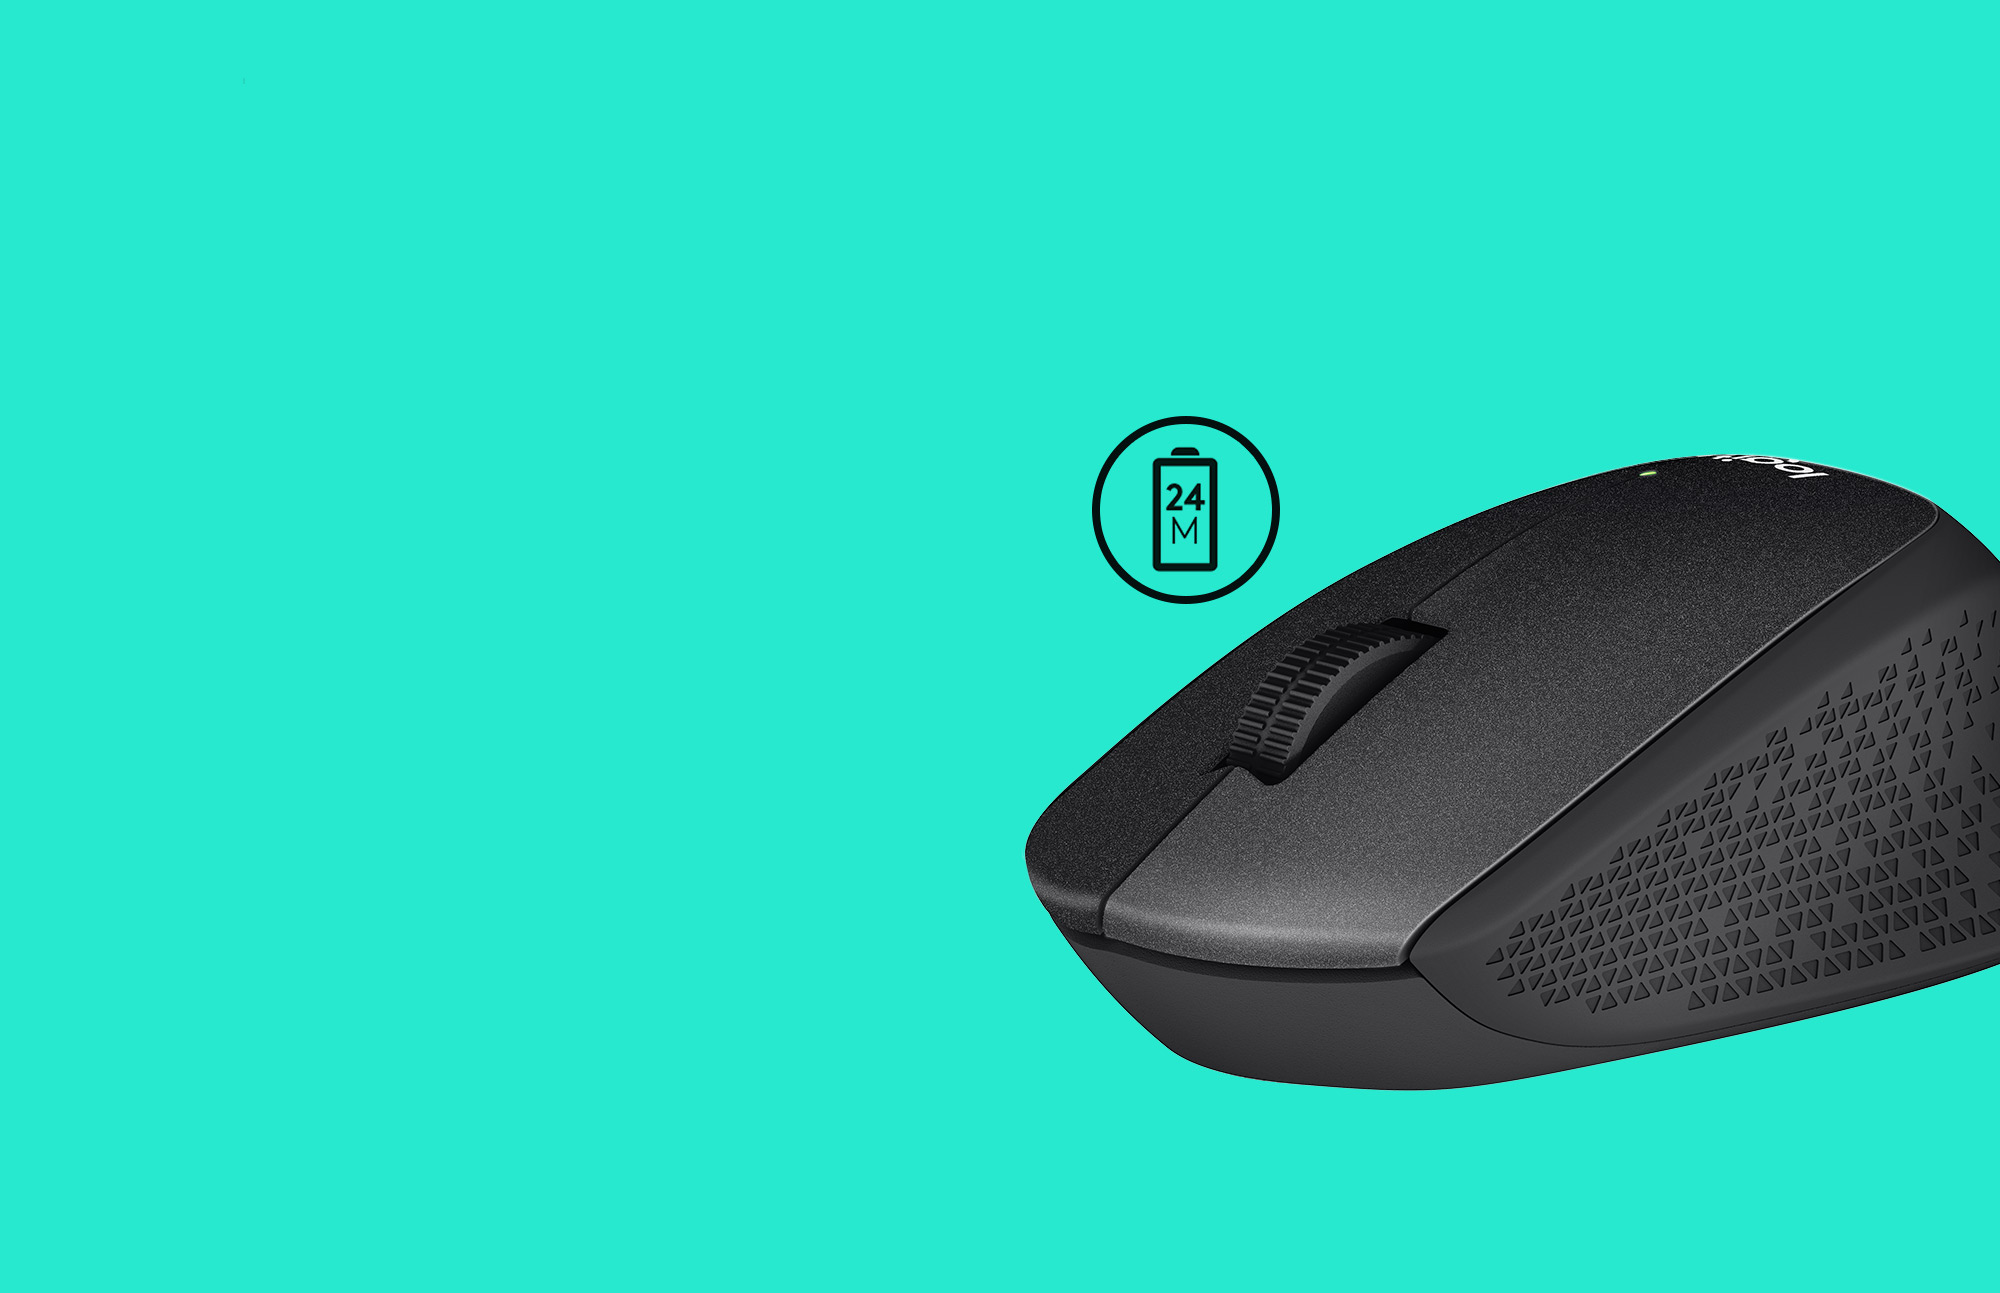 M330 mouse with teal back ground